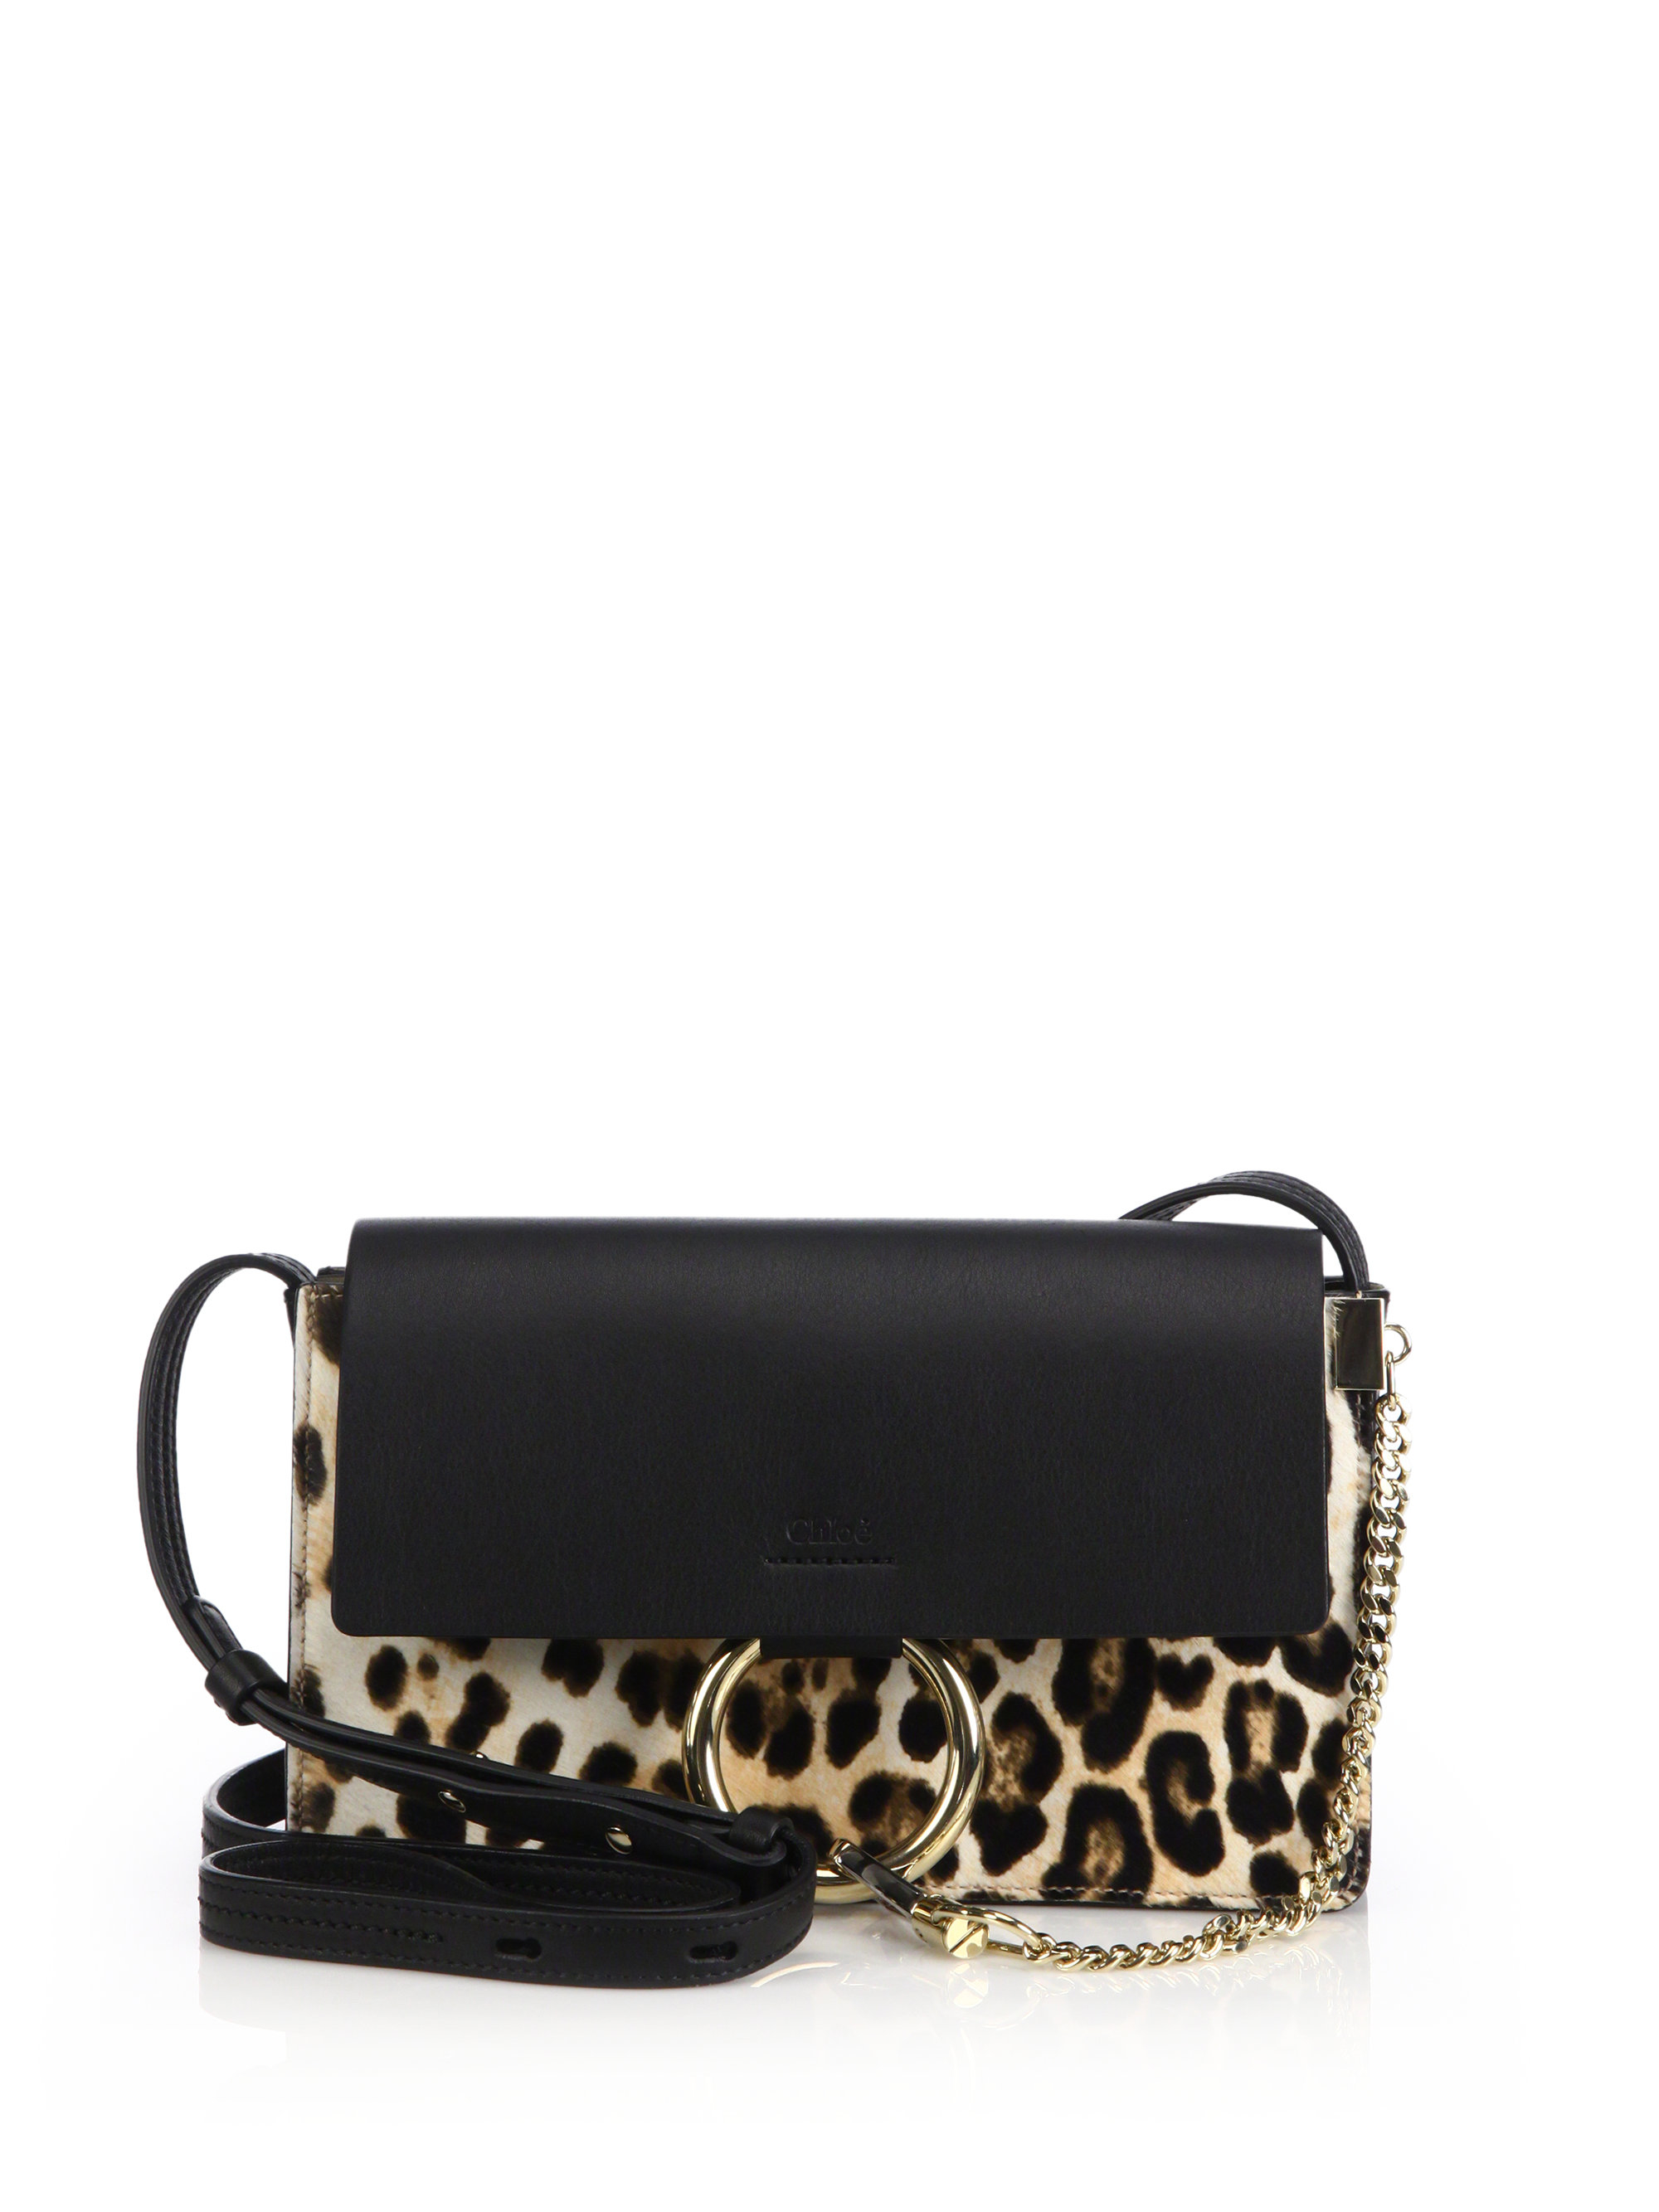 Chlo�� Faye Small Leopard-Print Leather Cross-Body Bag in Animal ...